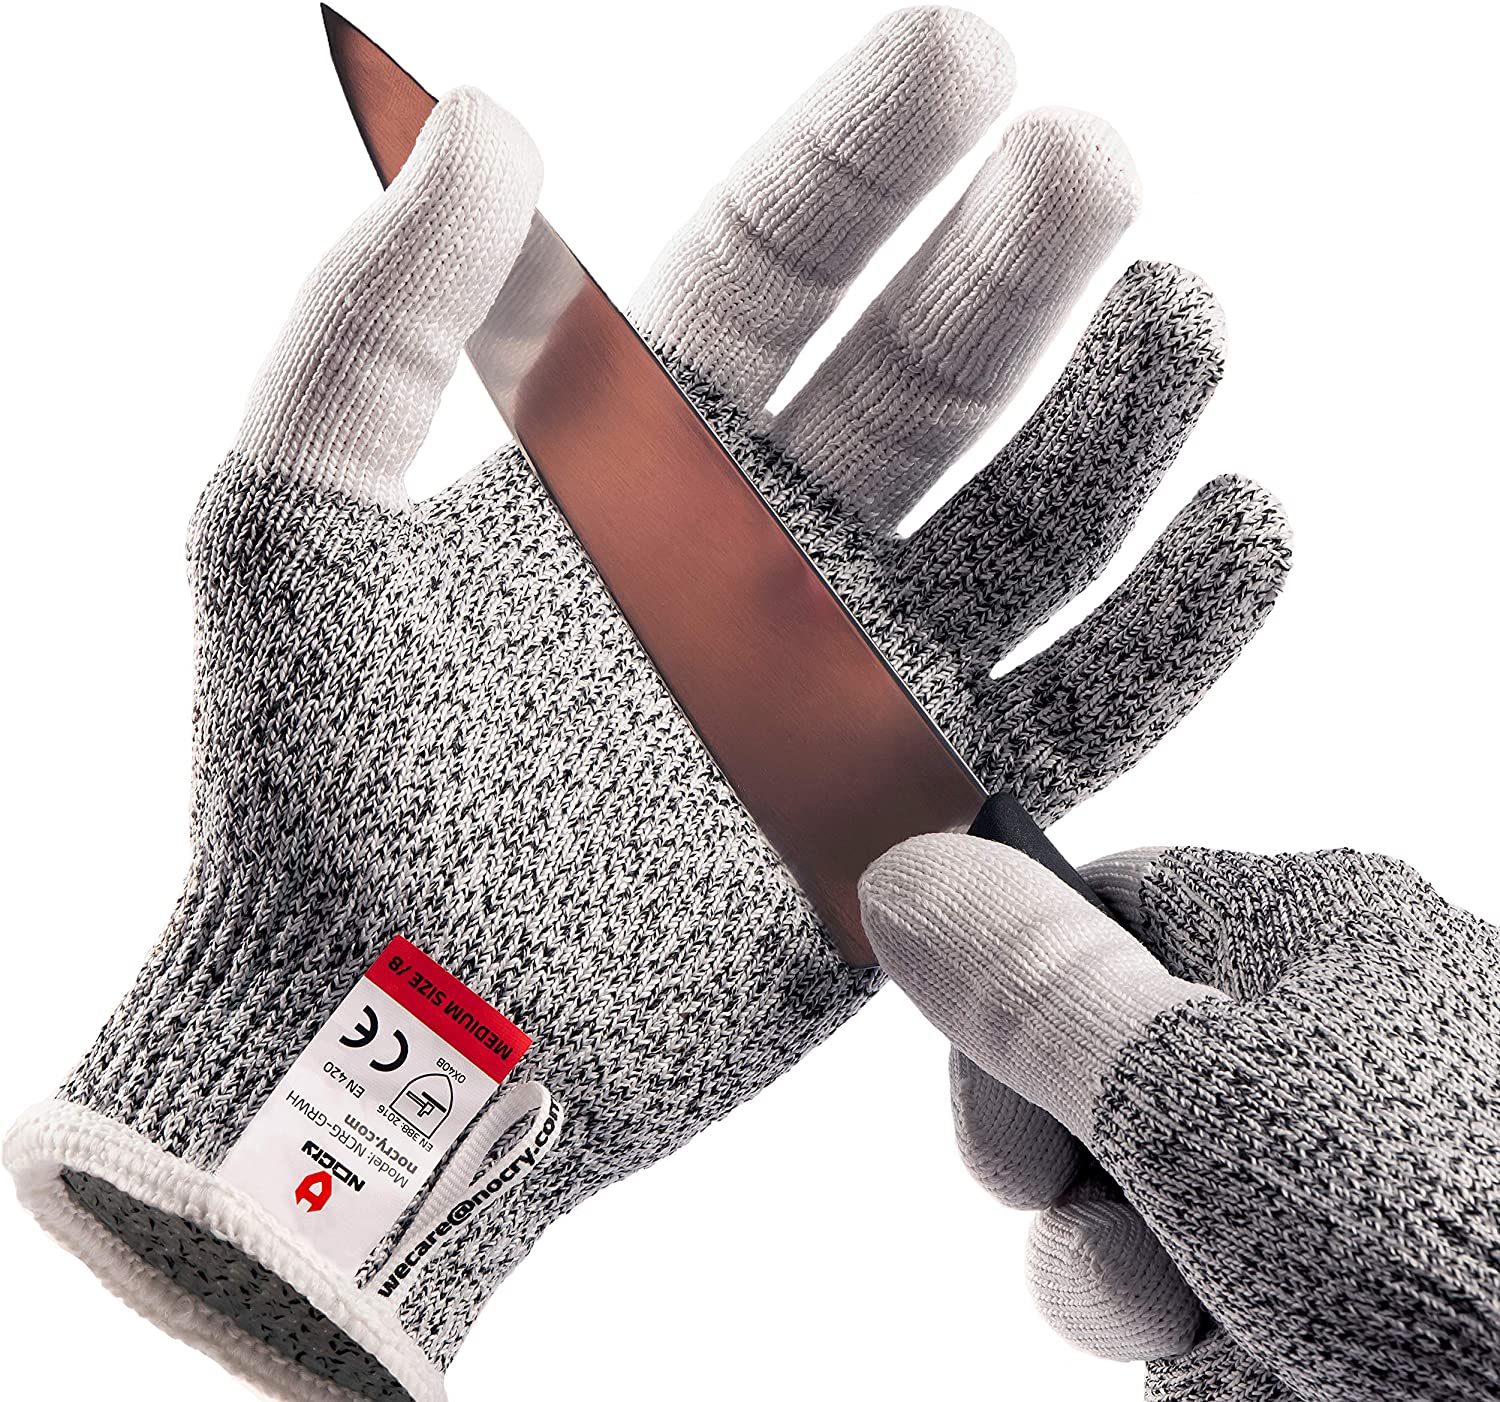 NoCry Sales Cut Resistant Kitchen Max 66% OFF and Gloves Reinforc Safety with Work